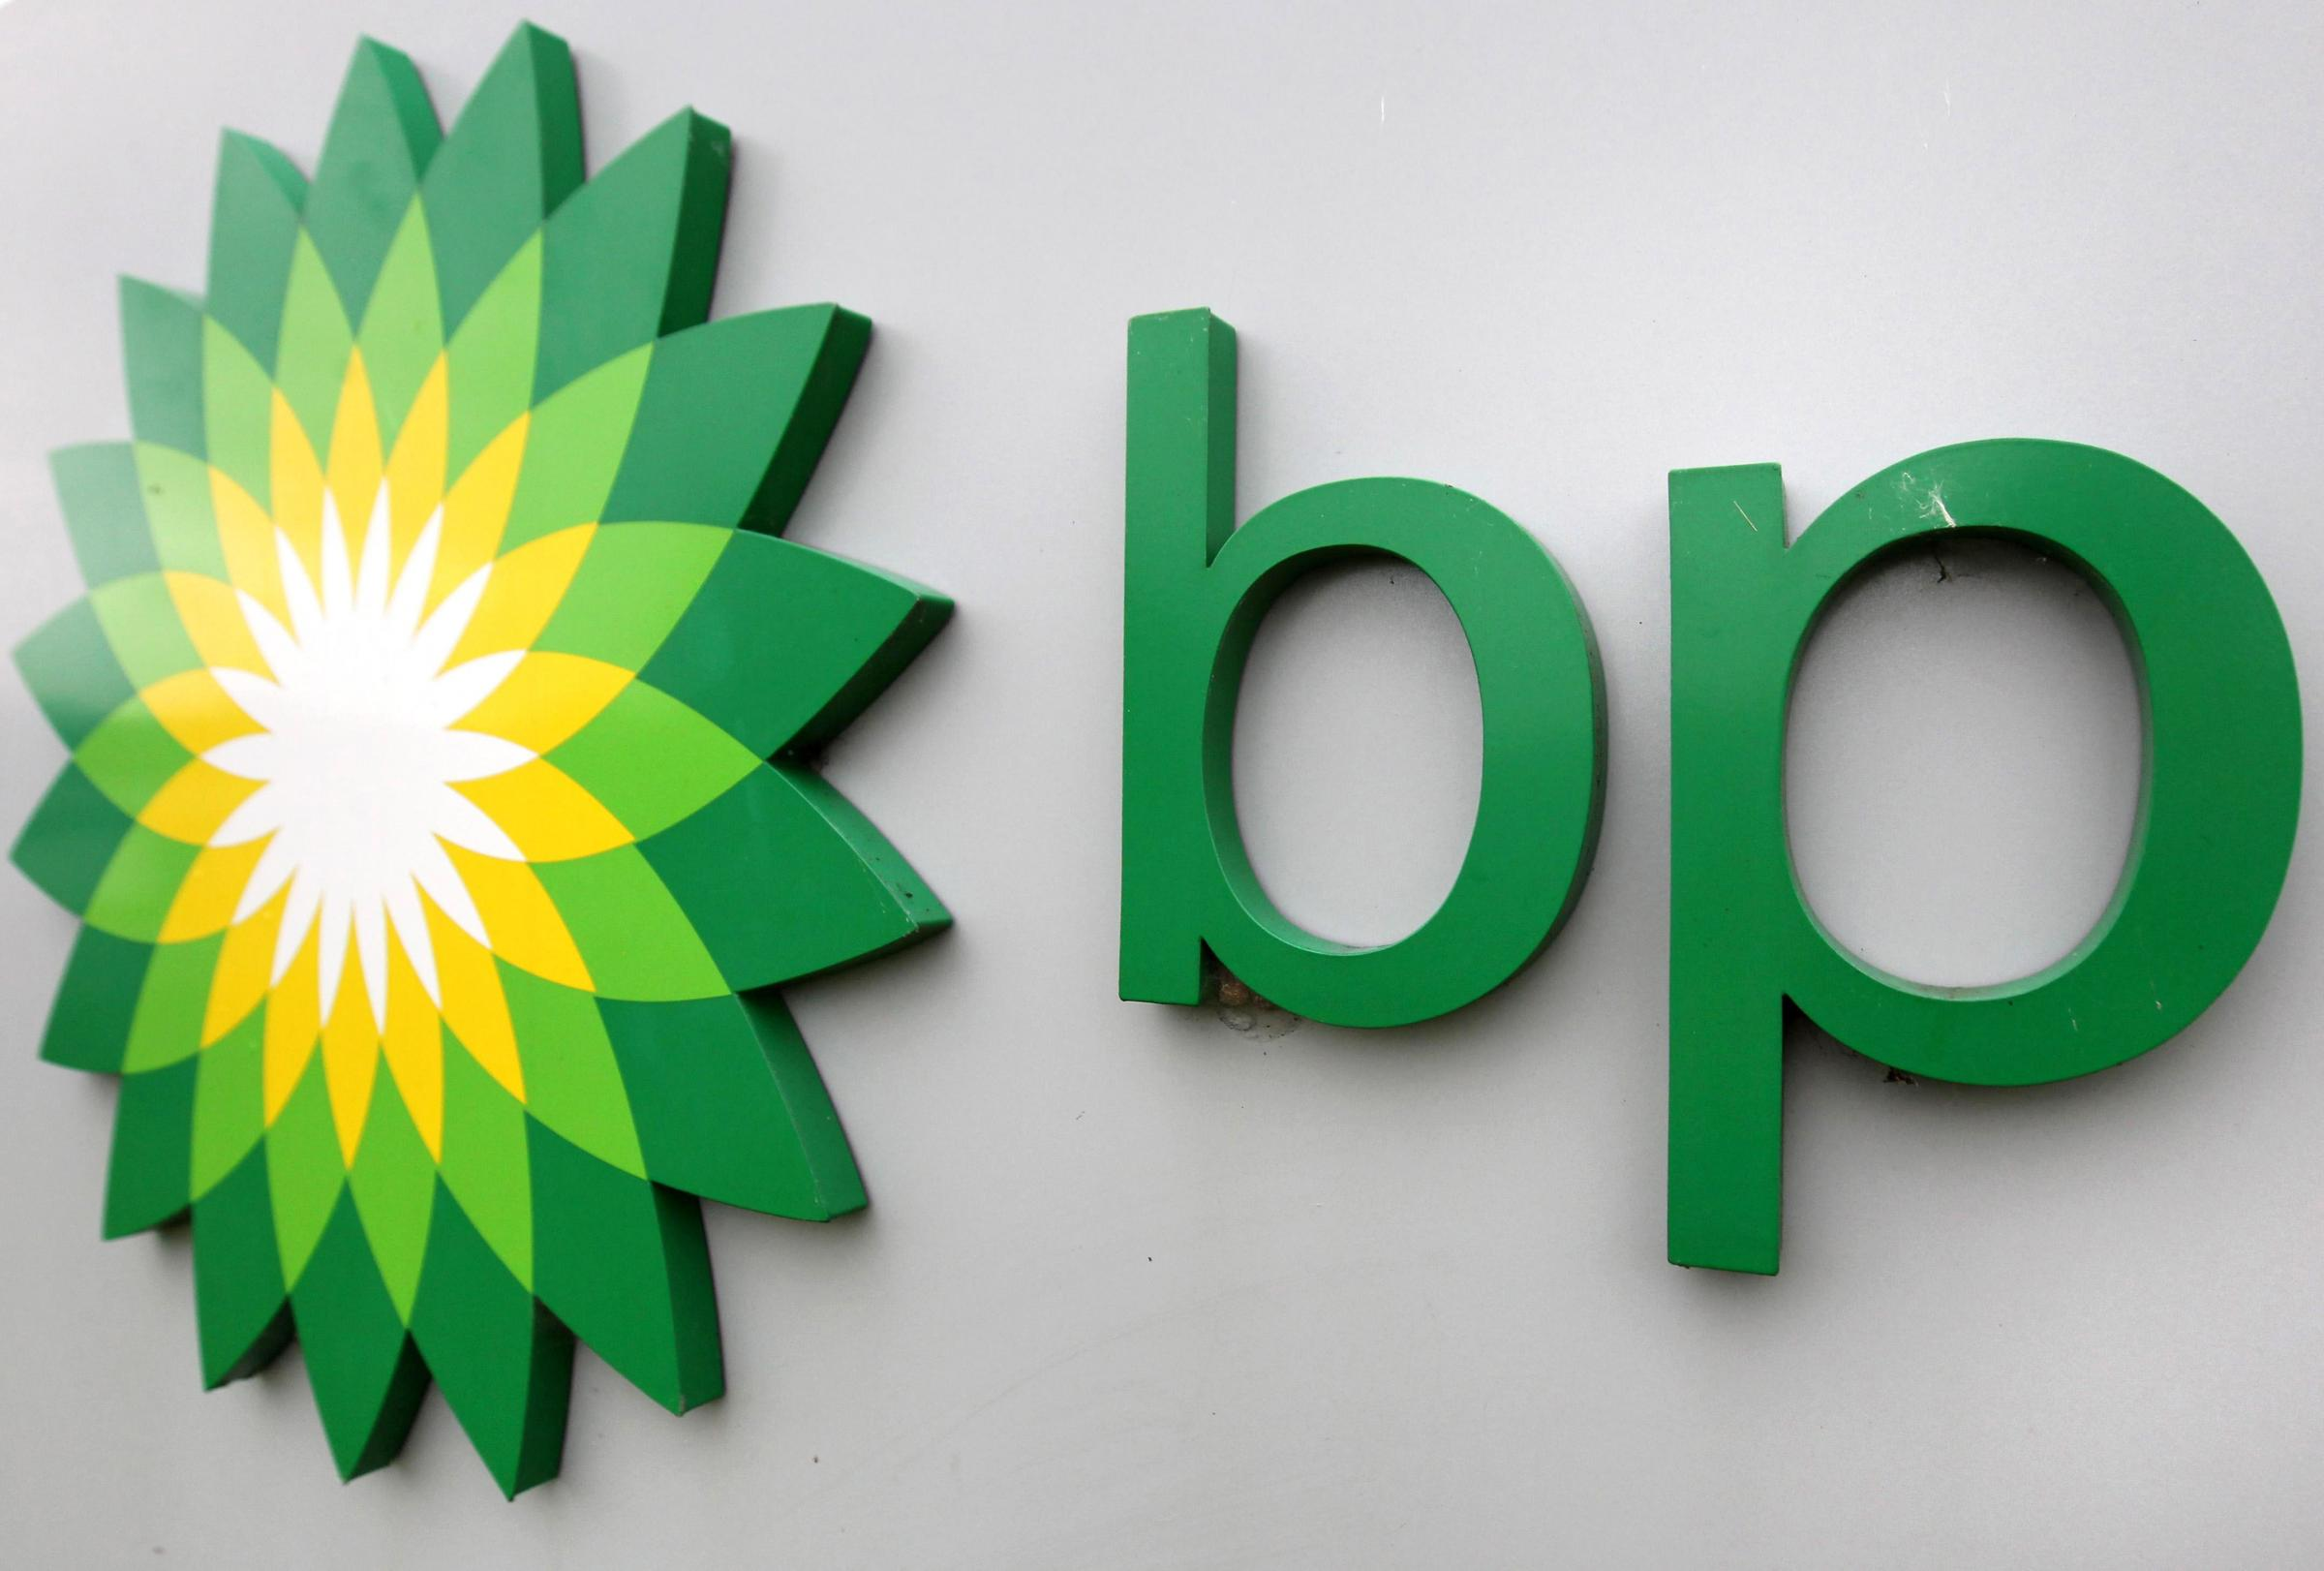 Plans for makeover at the BP garage in Grove Road